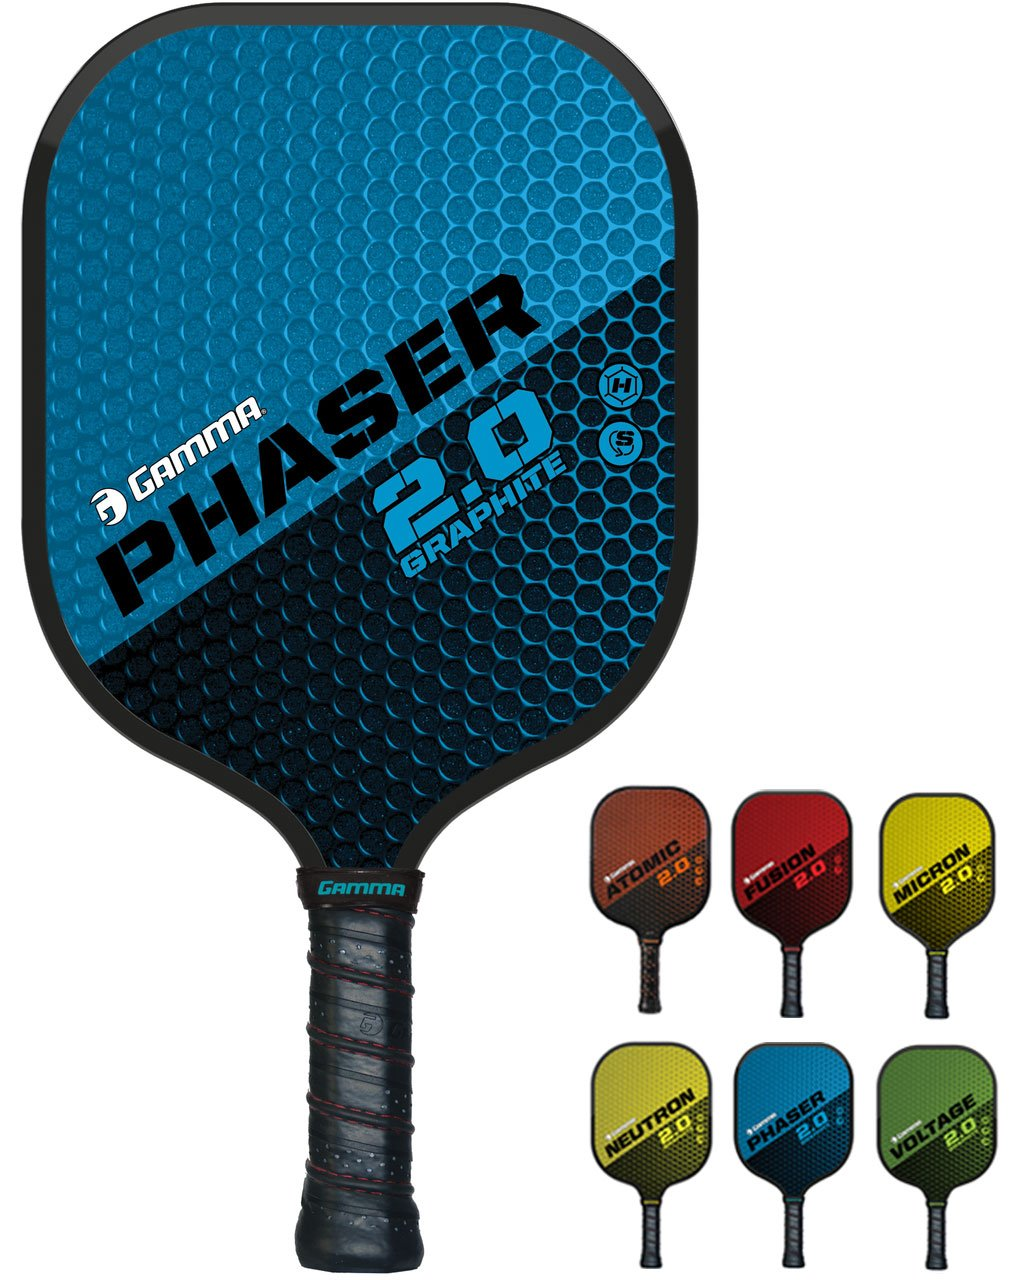 GAMMA Sports 2.0 Pickleball Paddles: Phaser 2.0 Pickleball Rackets - Textured Graphite Face - Mens and Womens Pickle Ball Racquet - Indoor and Outdoor Racket - Blue Pickle-Ball Paddle - 7.9 oz by Gamma